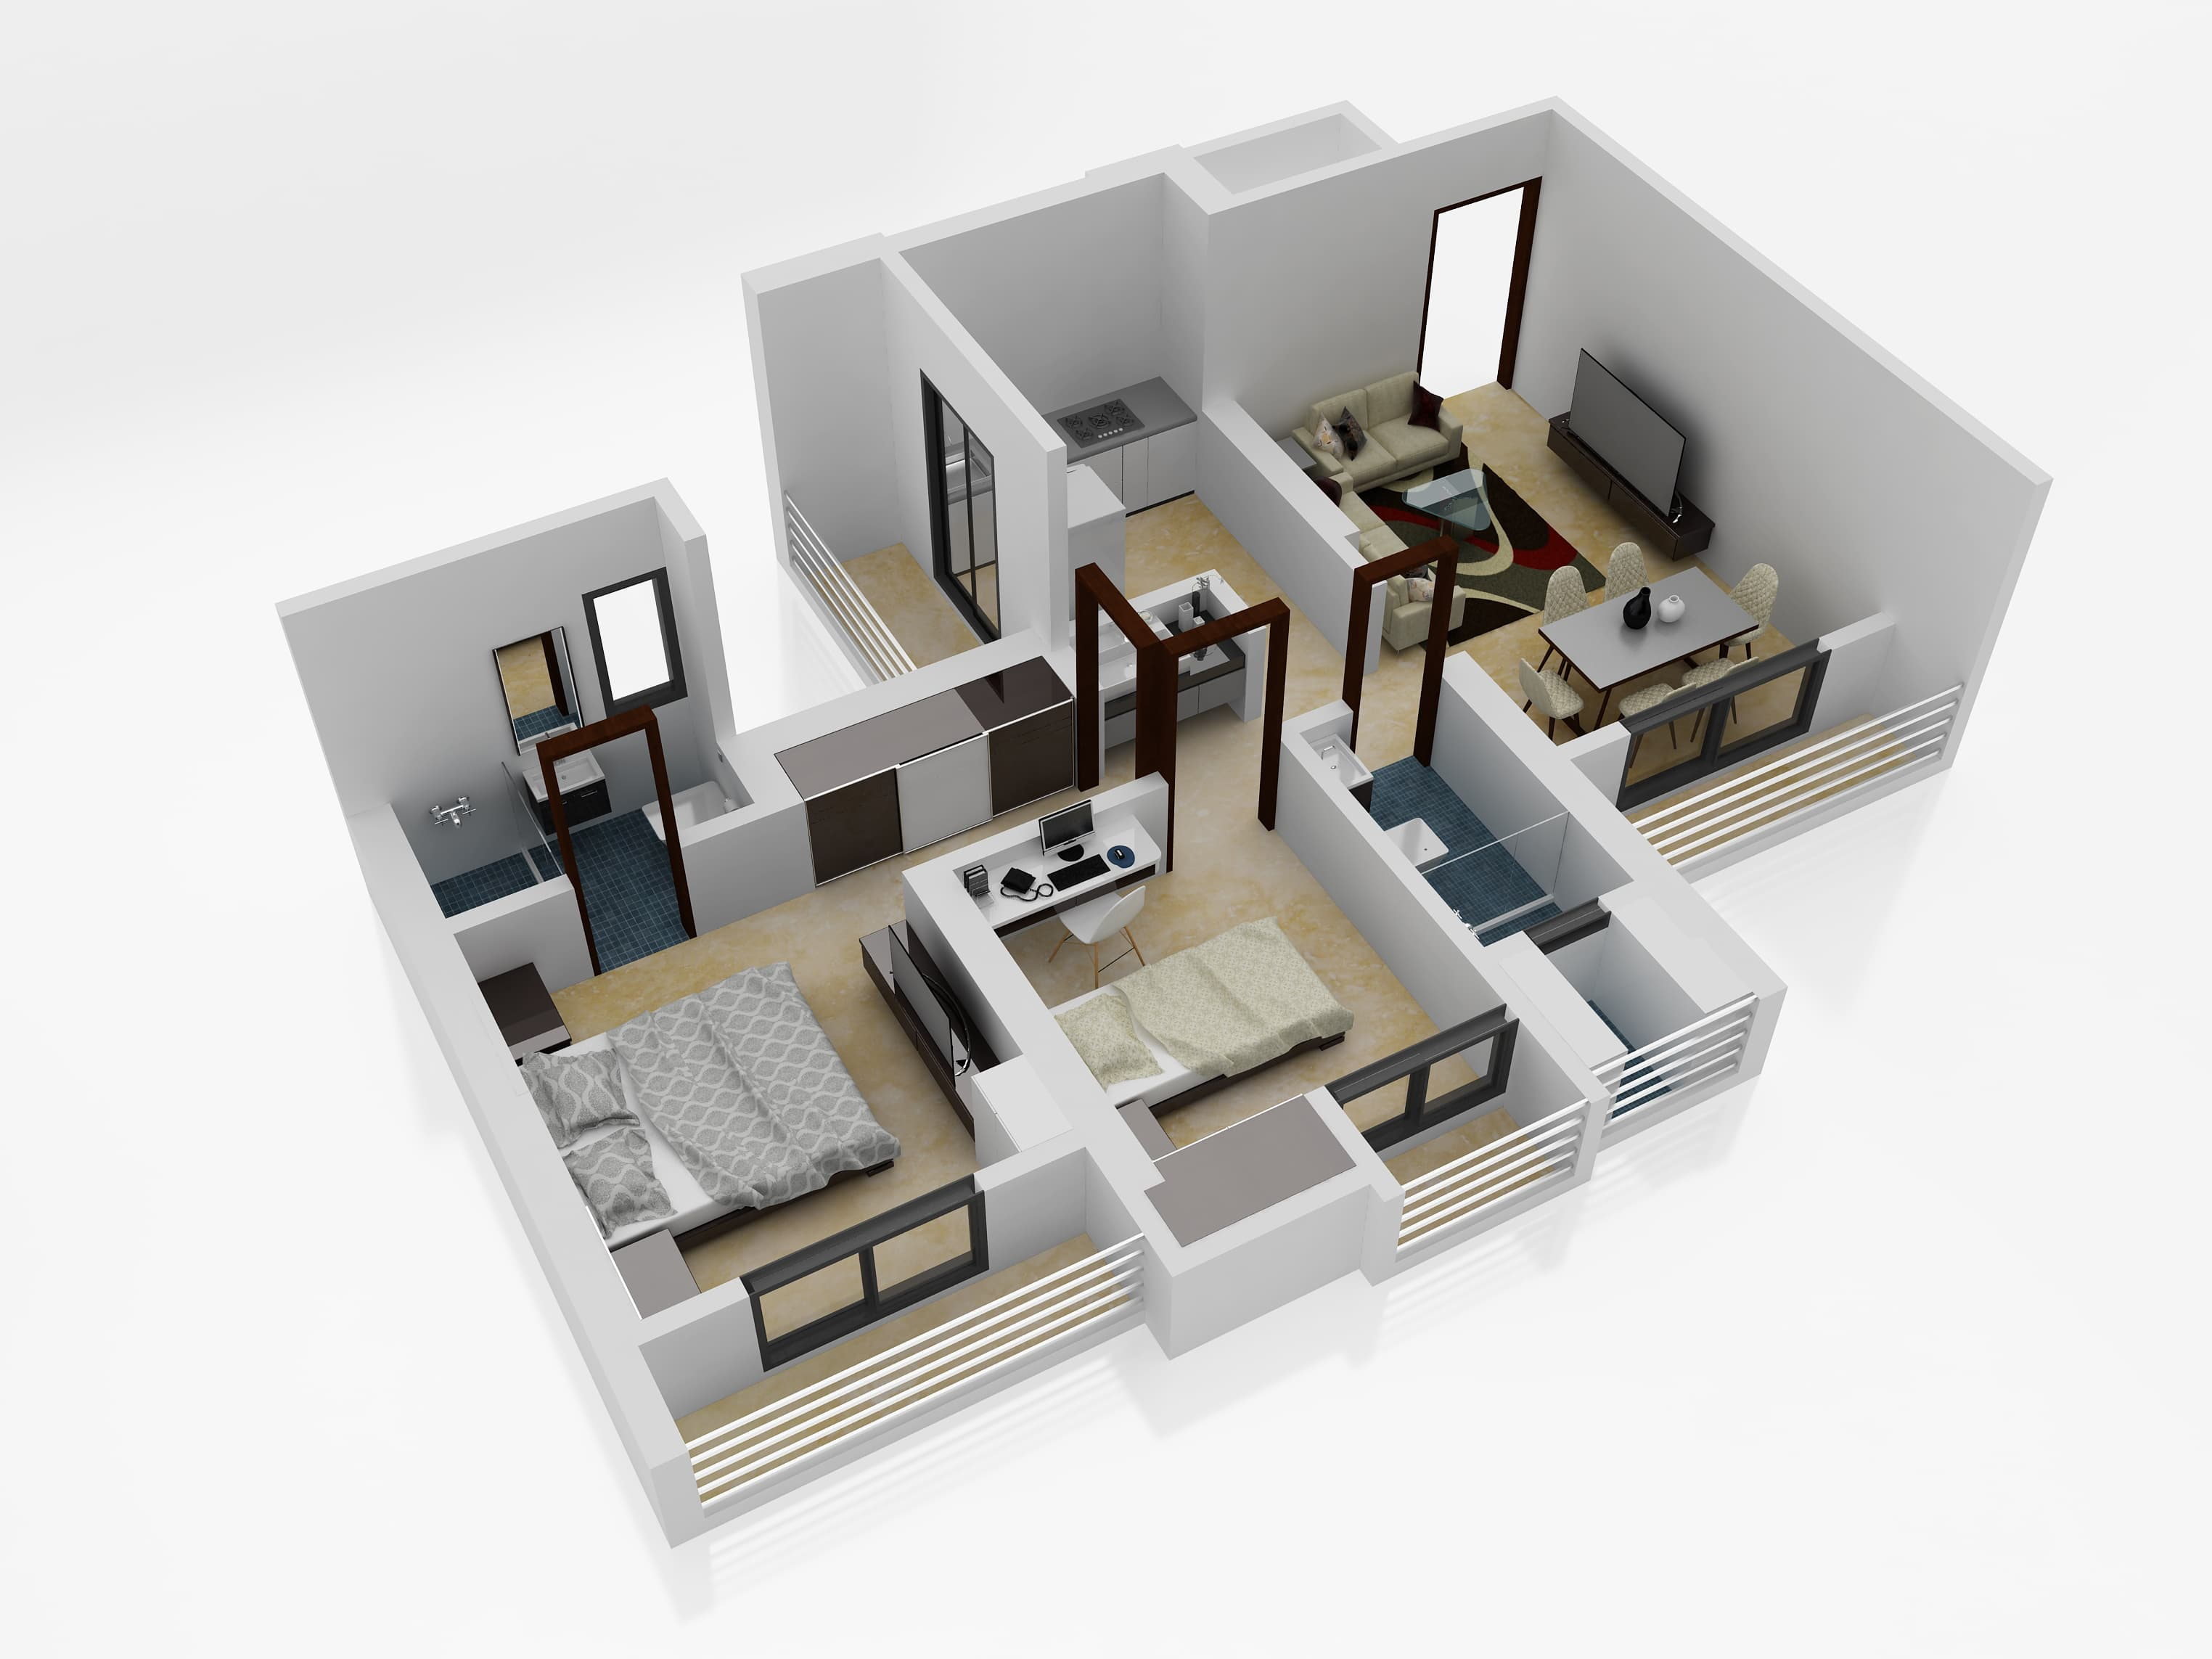 3D Isometric View